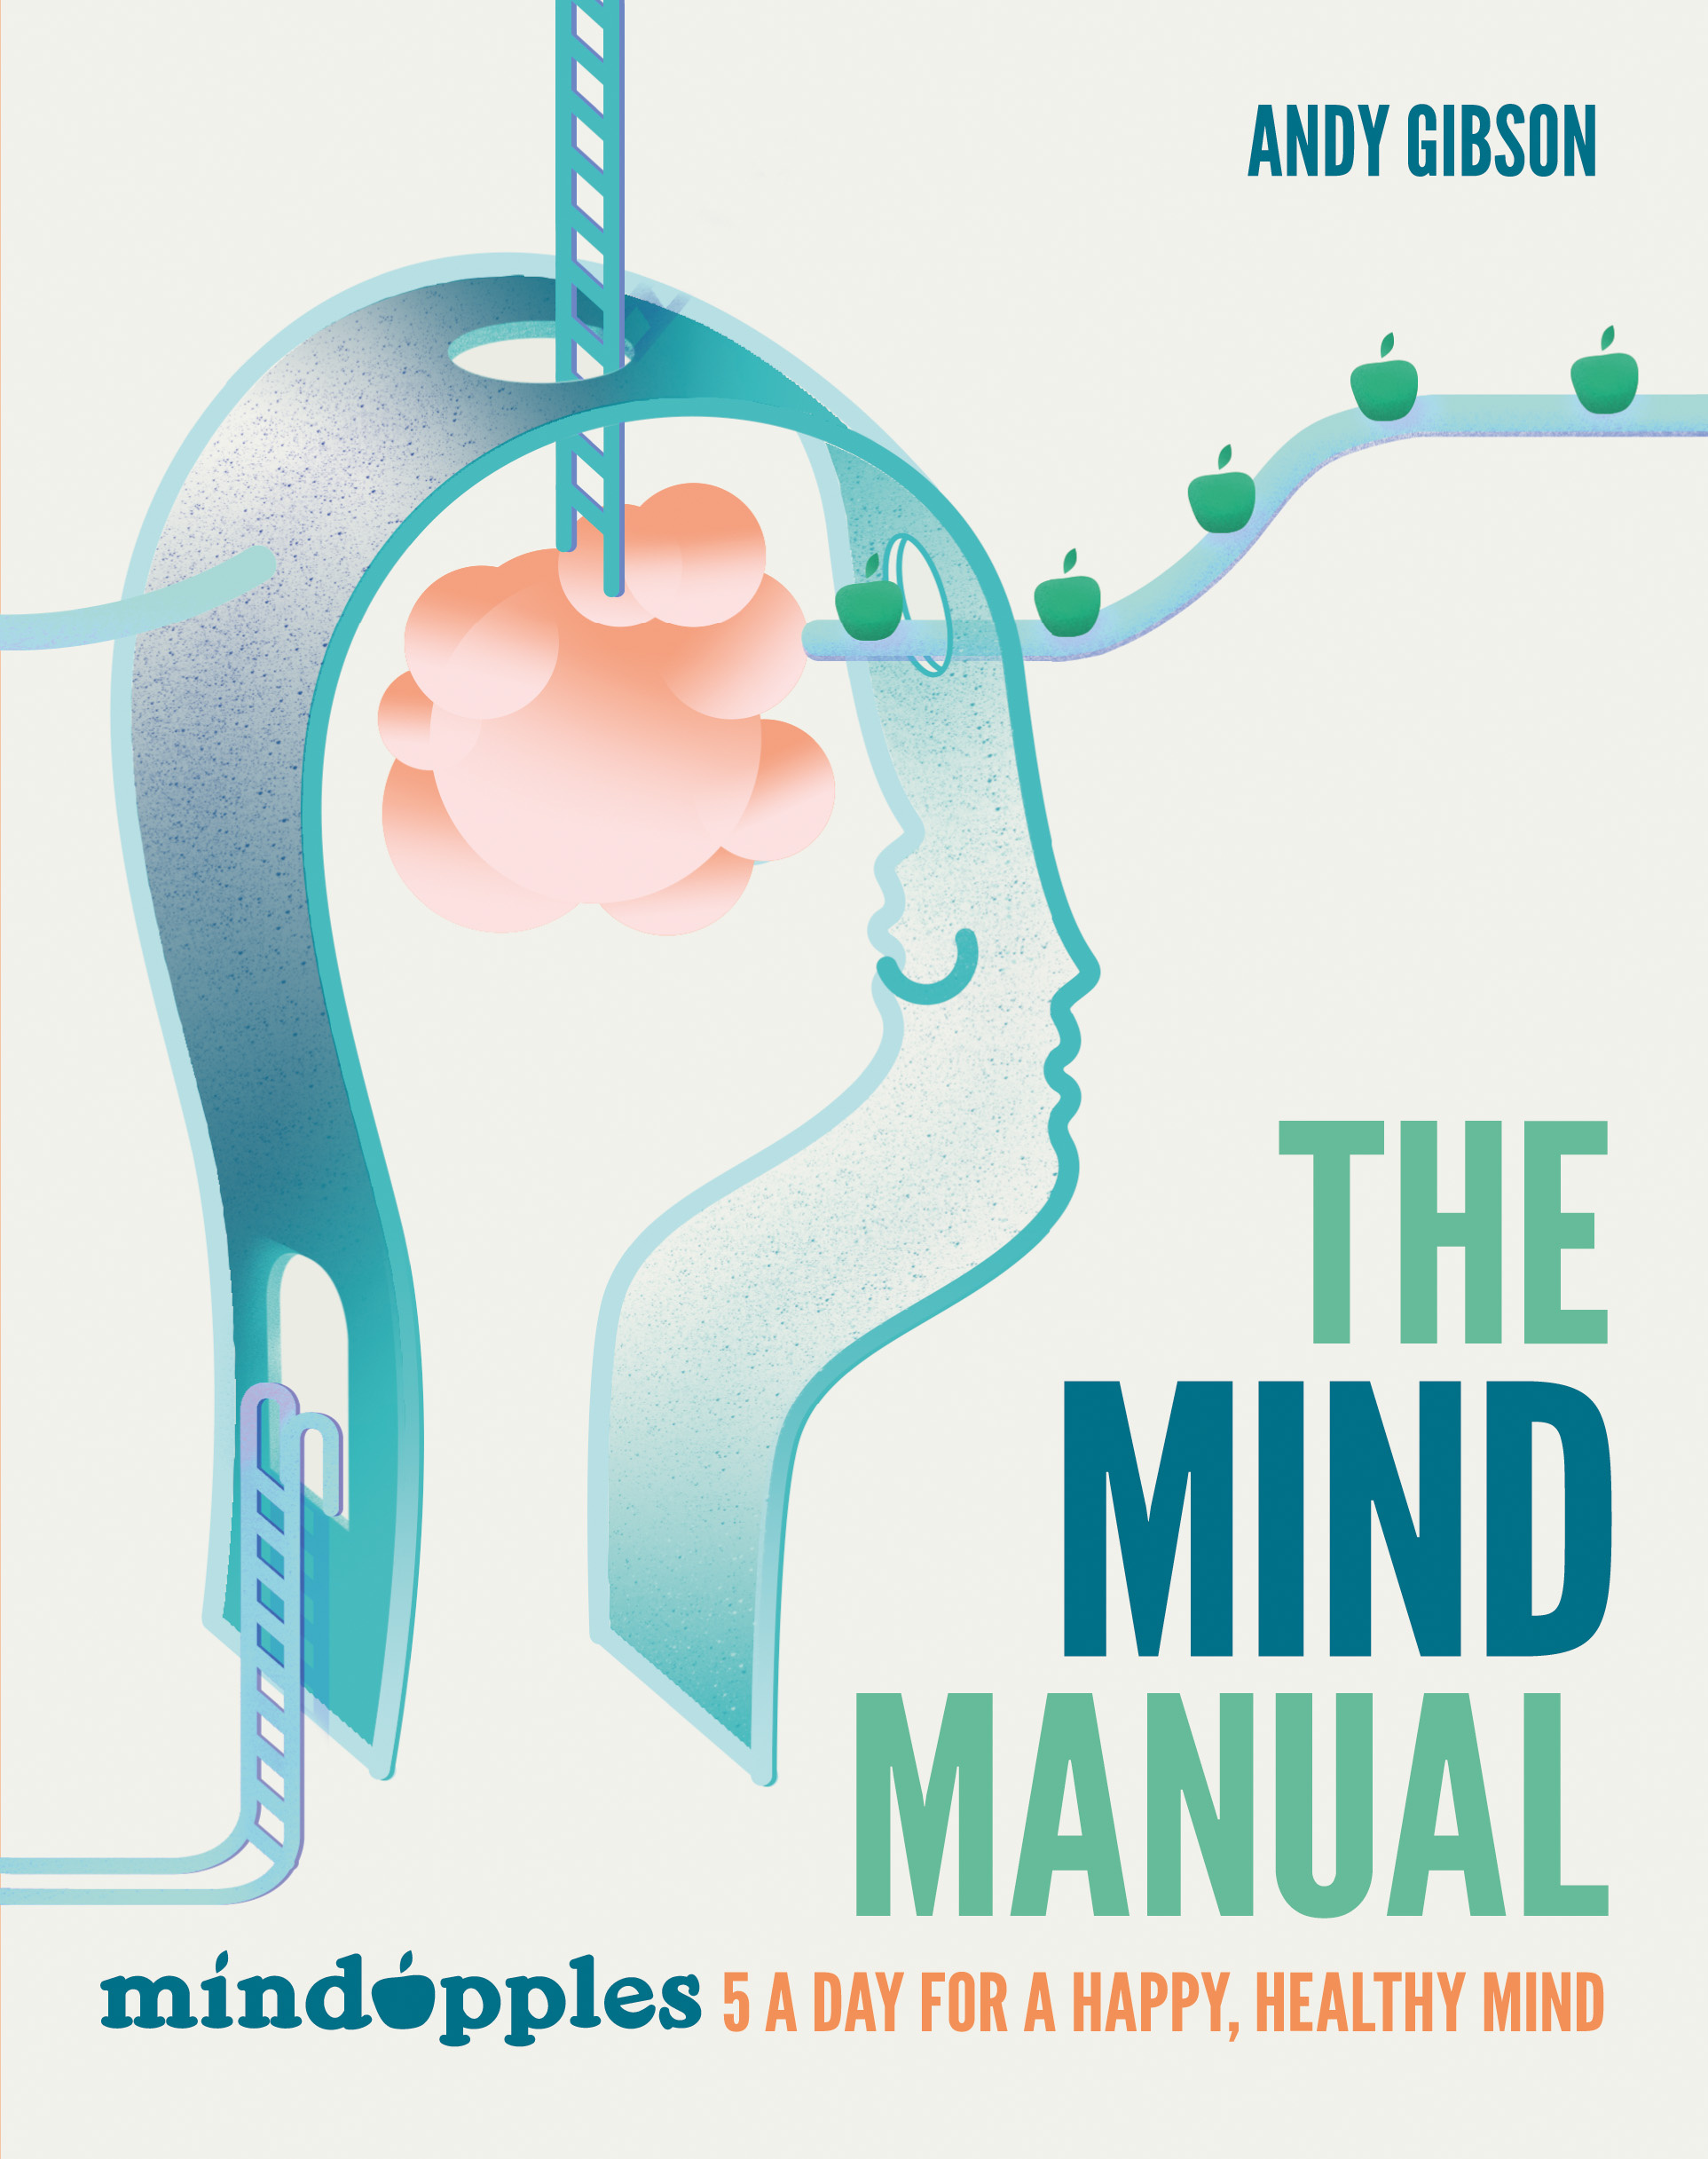 The Mind Manual Mindapples 5 A Day For A Happy Healthy Mind By